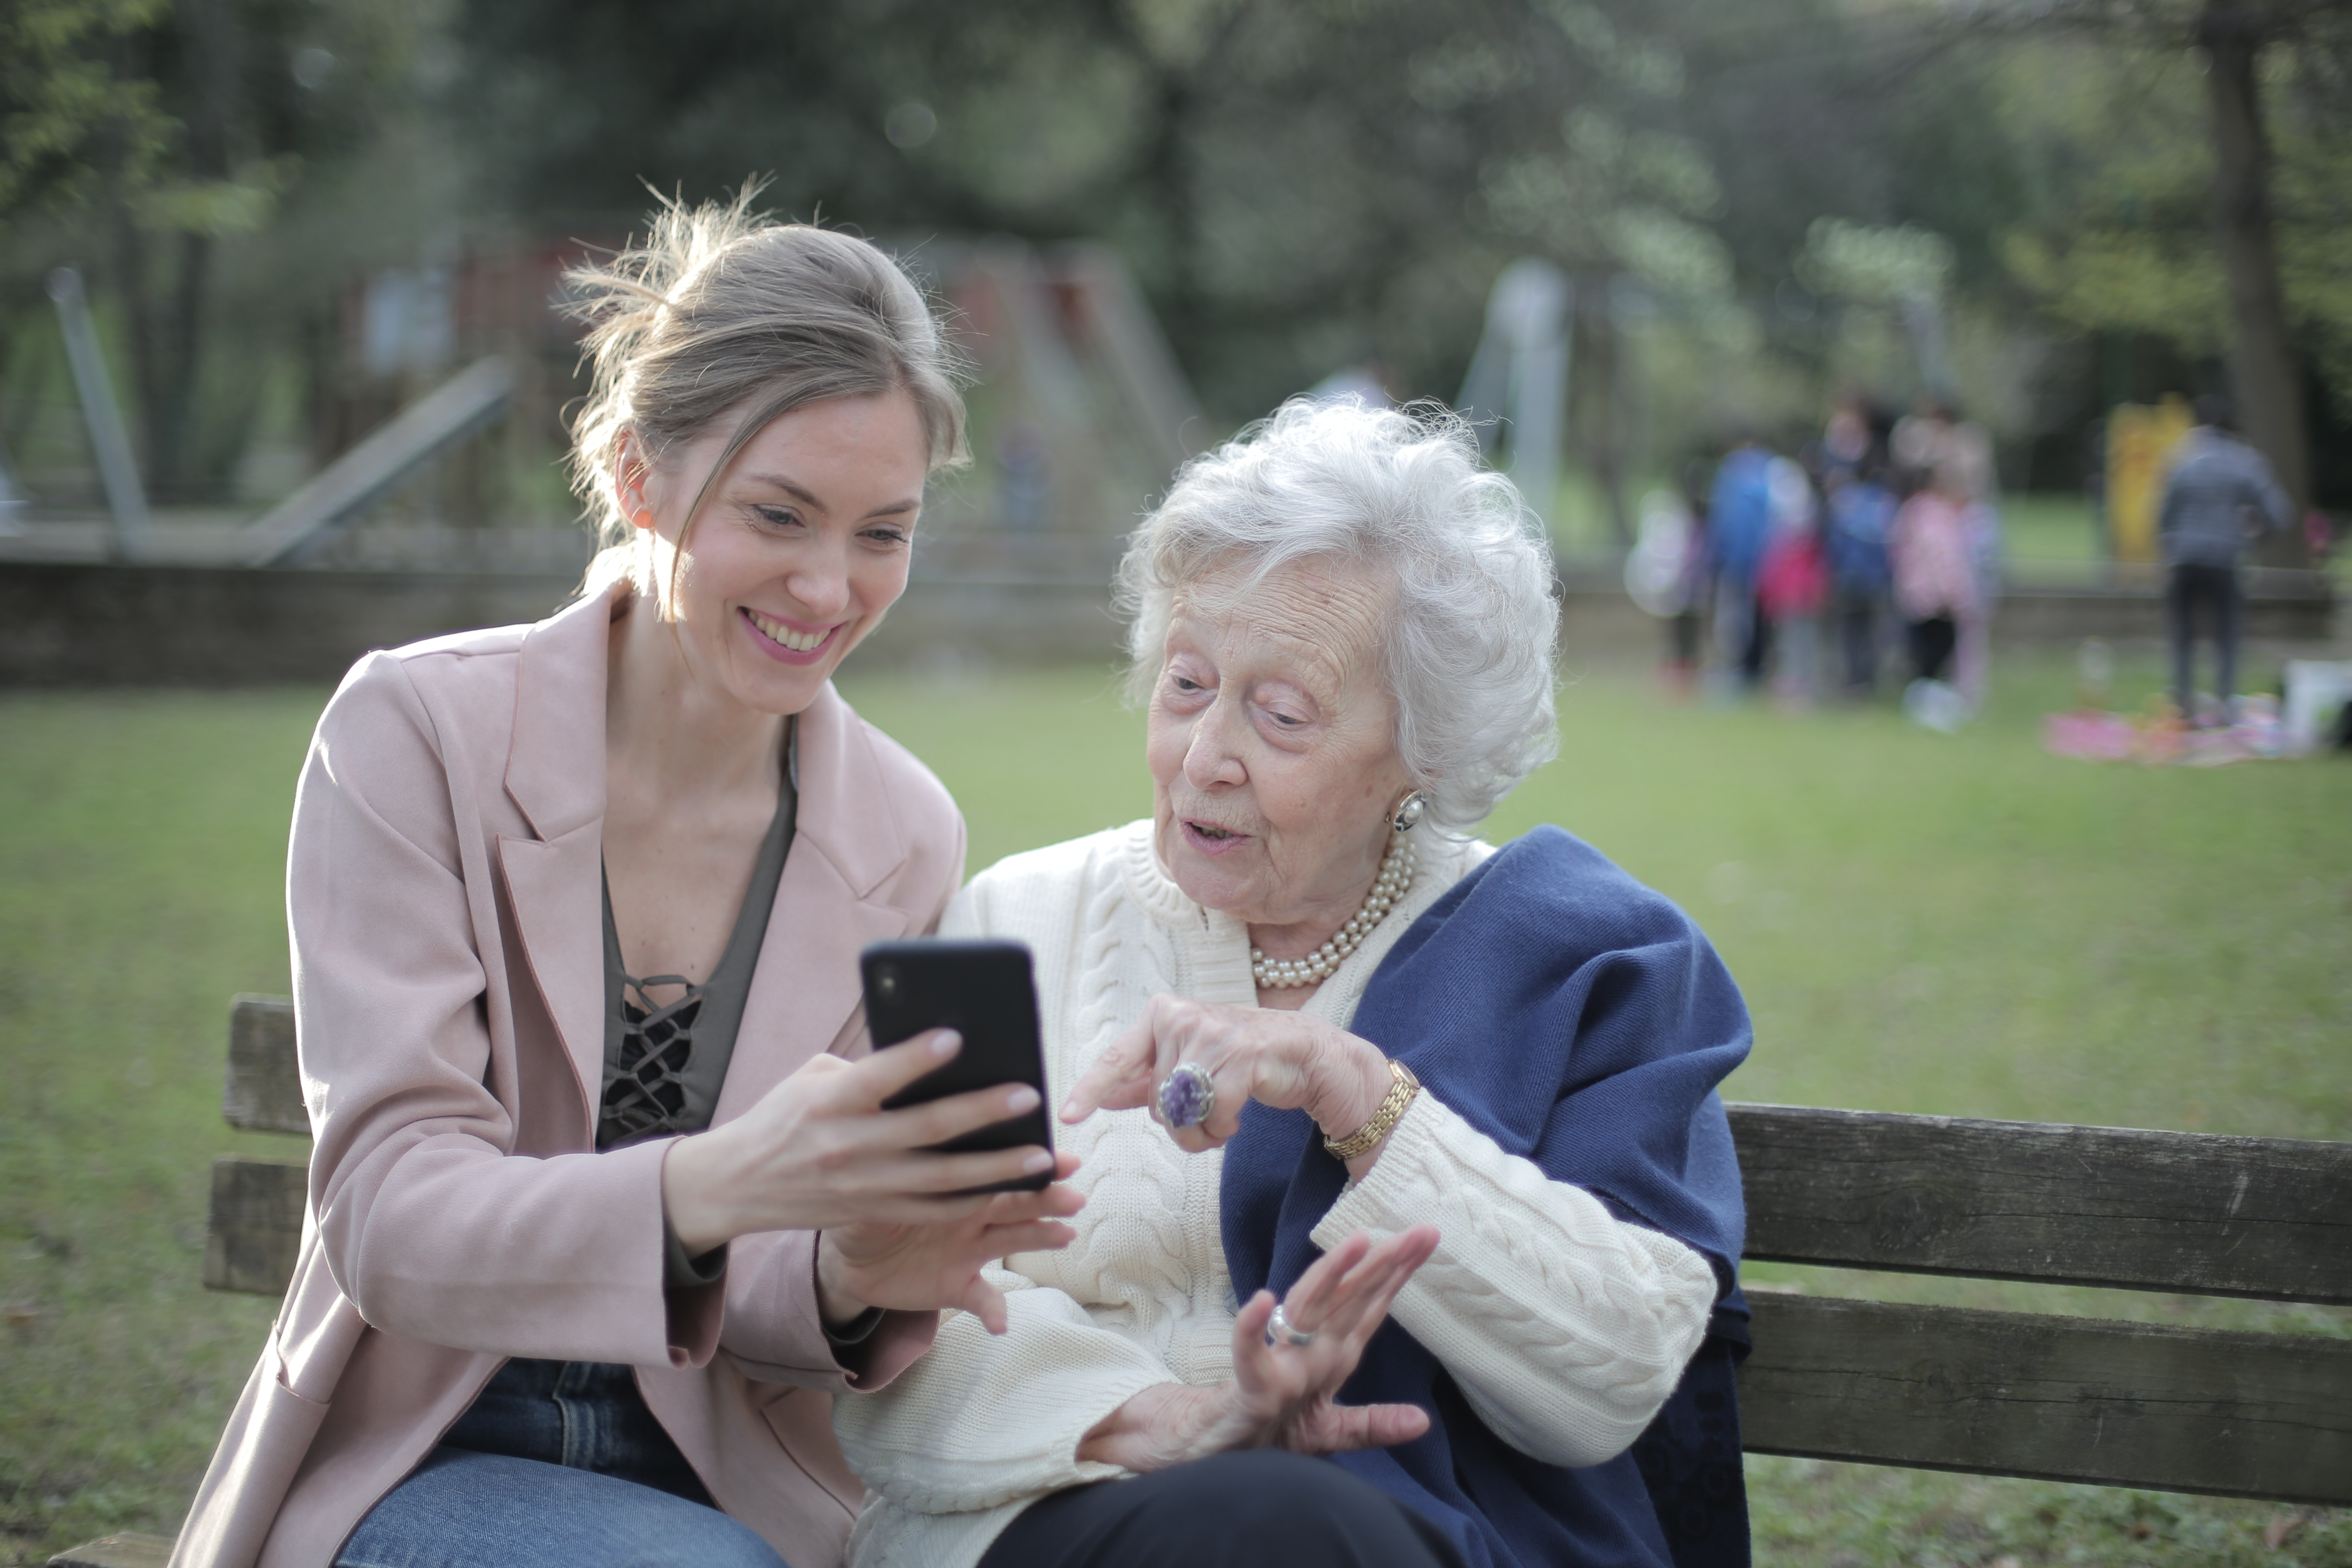 Supporting a person to use a smartphone